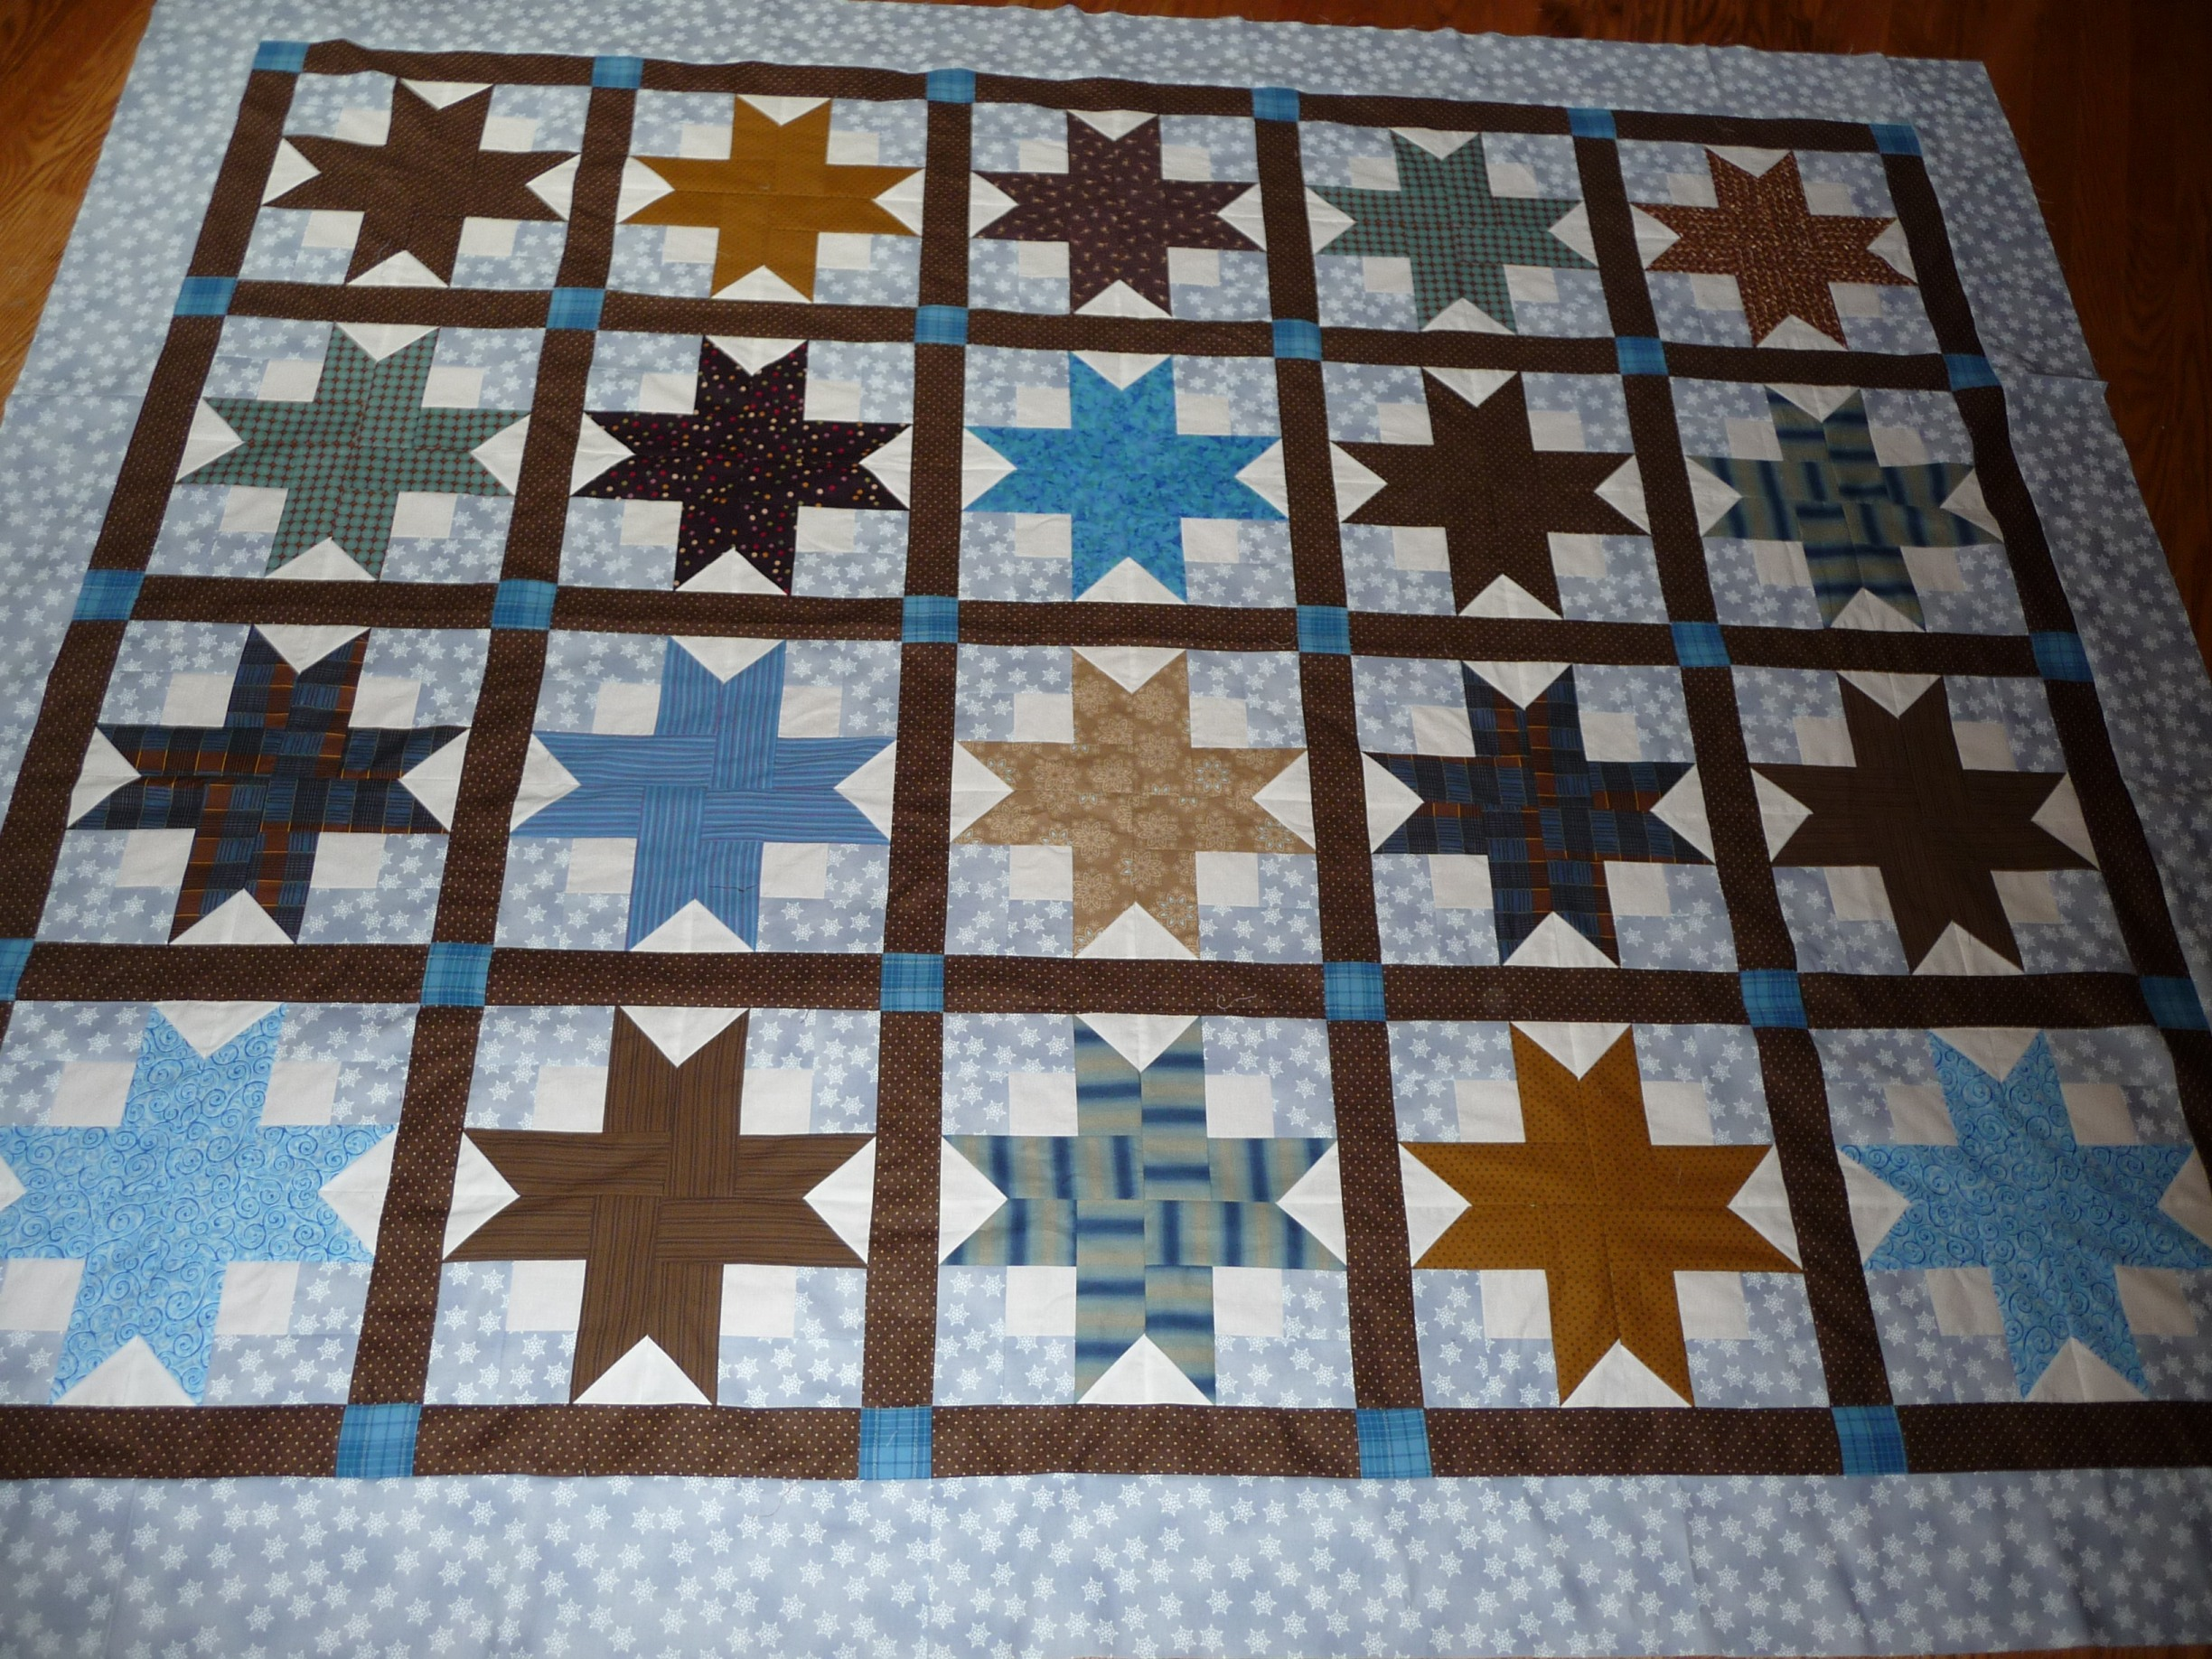 Shirley Anne's Heart » Quilty Things in SAO's World: Fred's Boxy ... : boxy stars quilt - Adamdwight.com